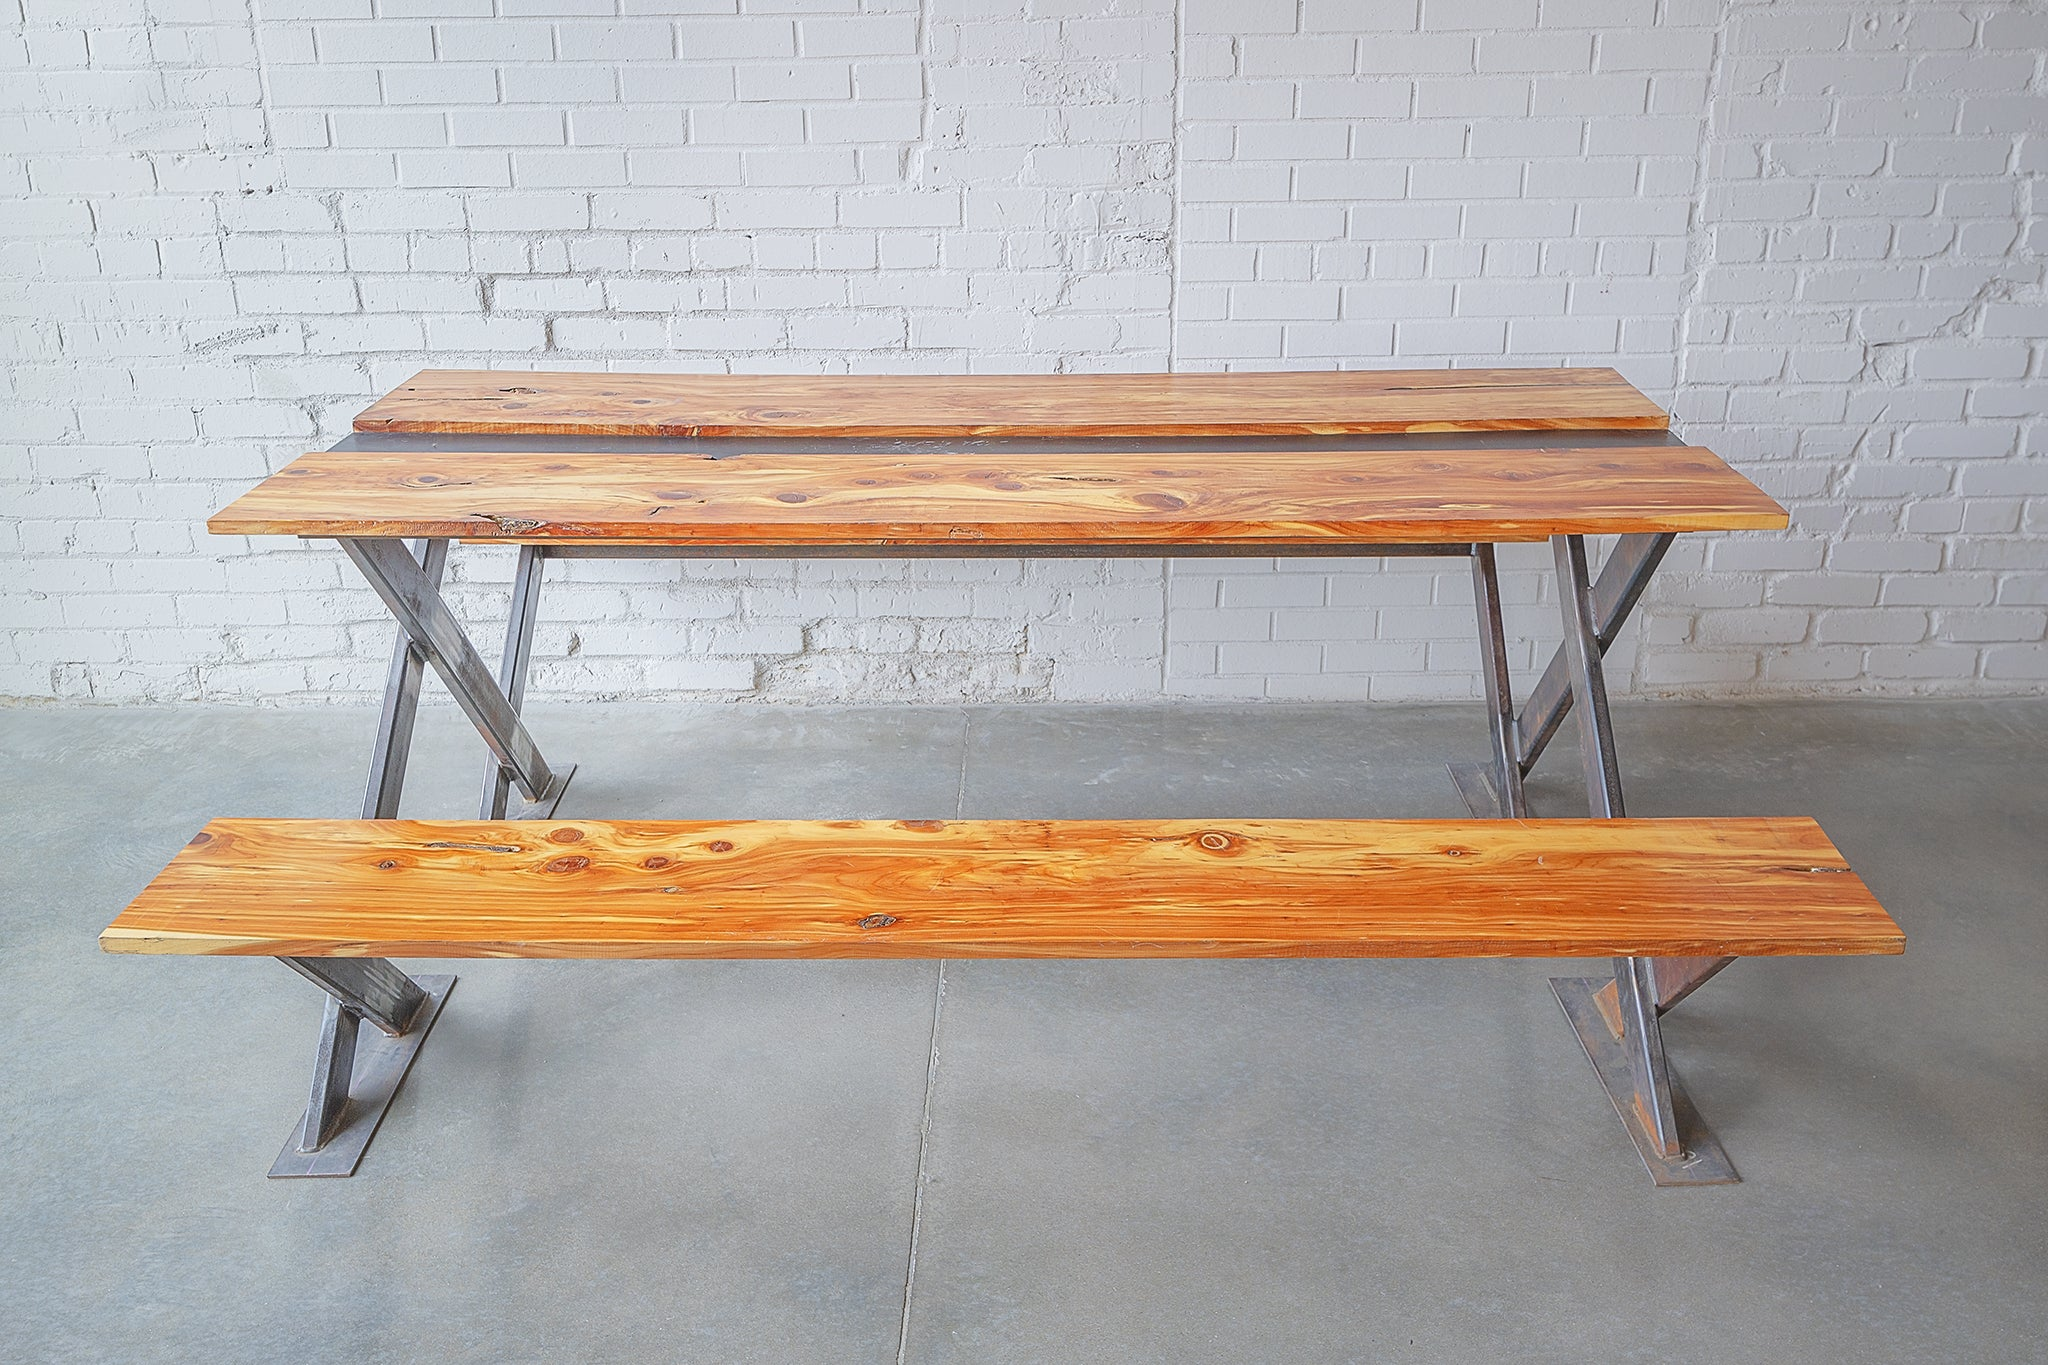 Picnic Table, Wood, Raw Steel, X-Frame